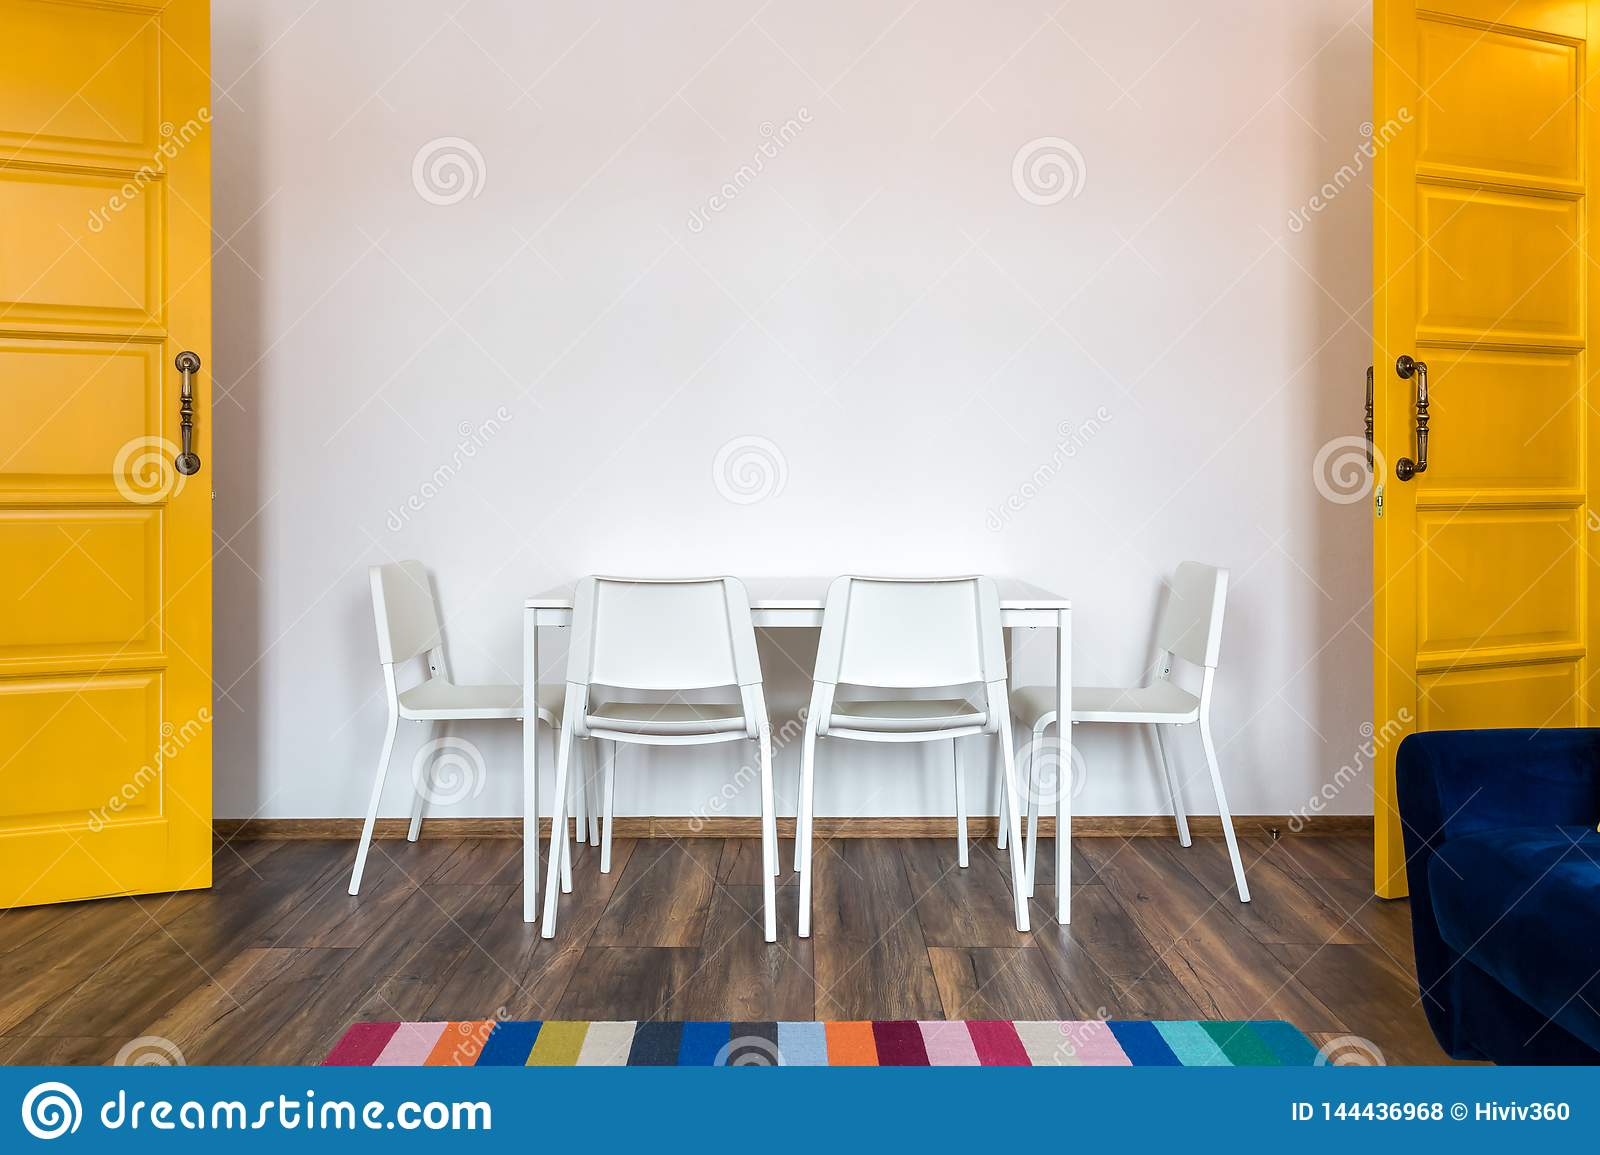 White wooden chairs with a table against the background of a white wall in the interior with yellow doors